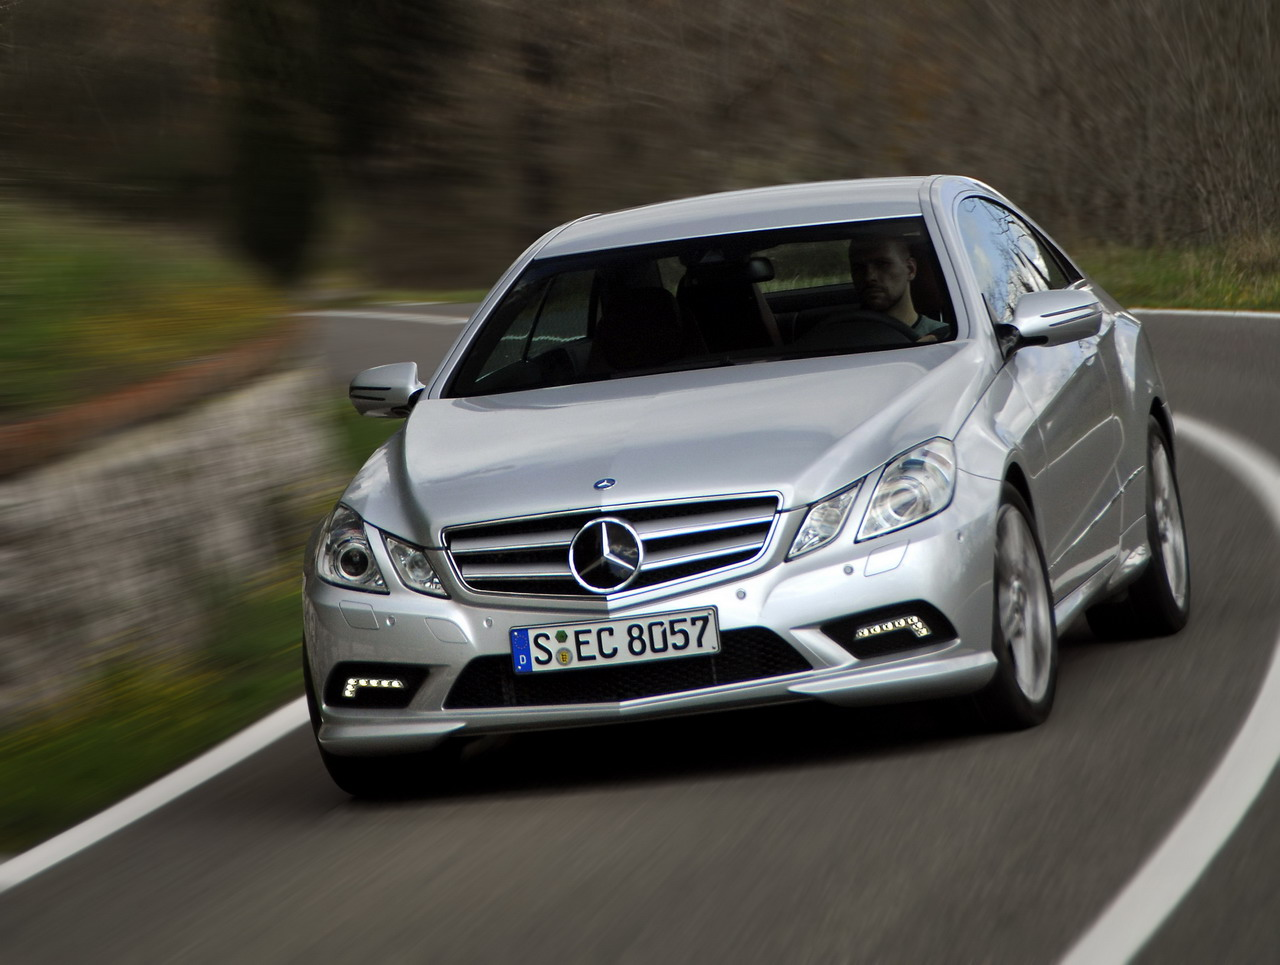 Sunhayoon ercedes benz e class wallpaper for Mercedes benz brand image